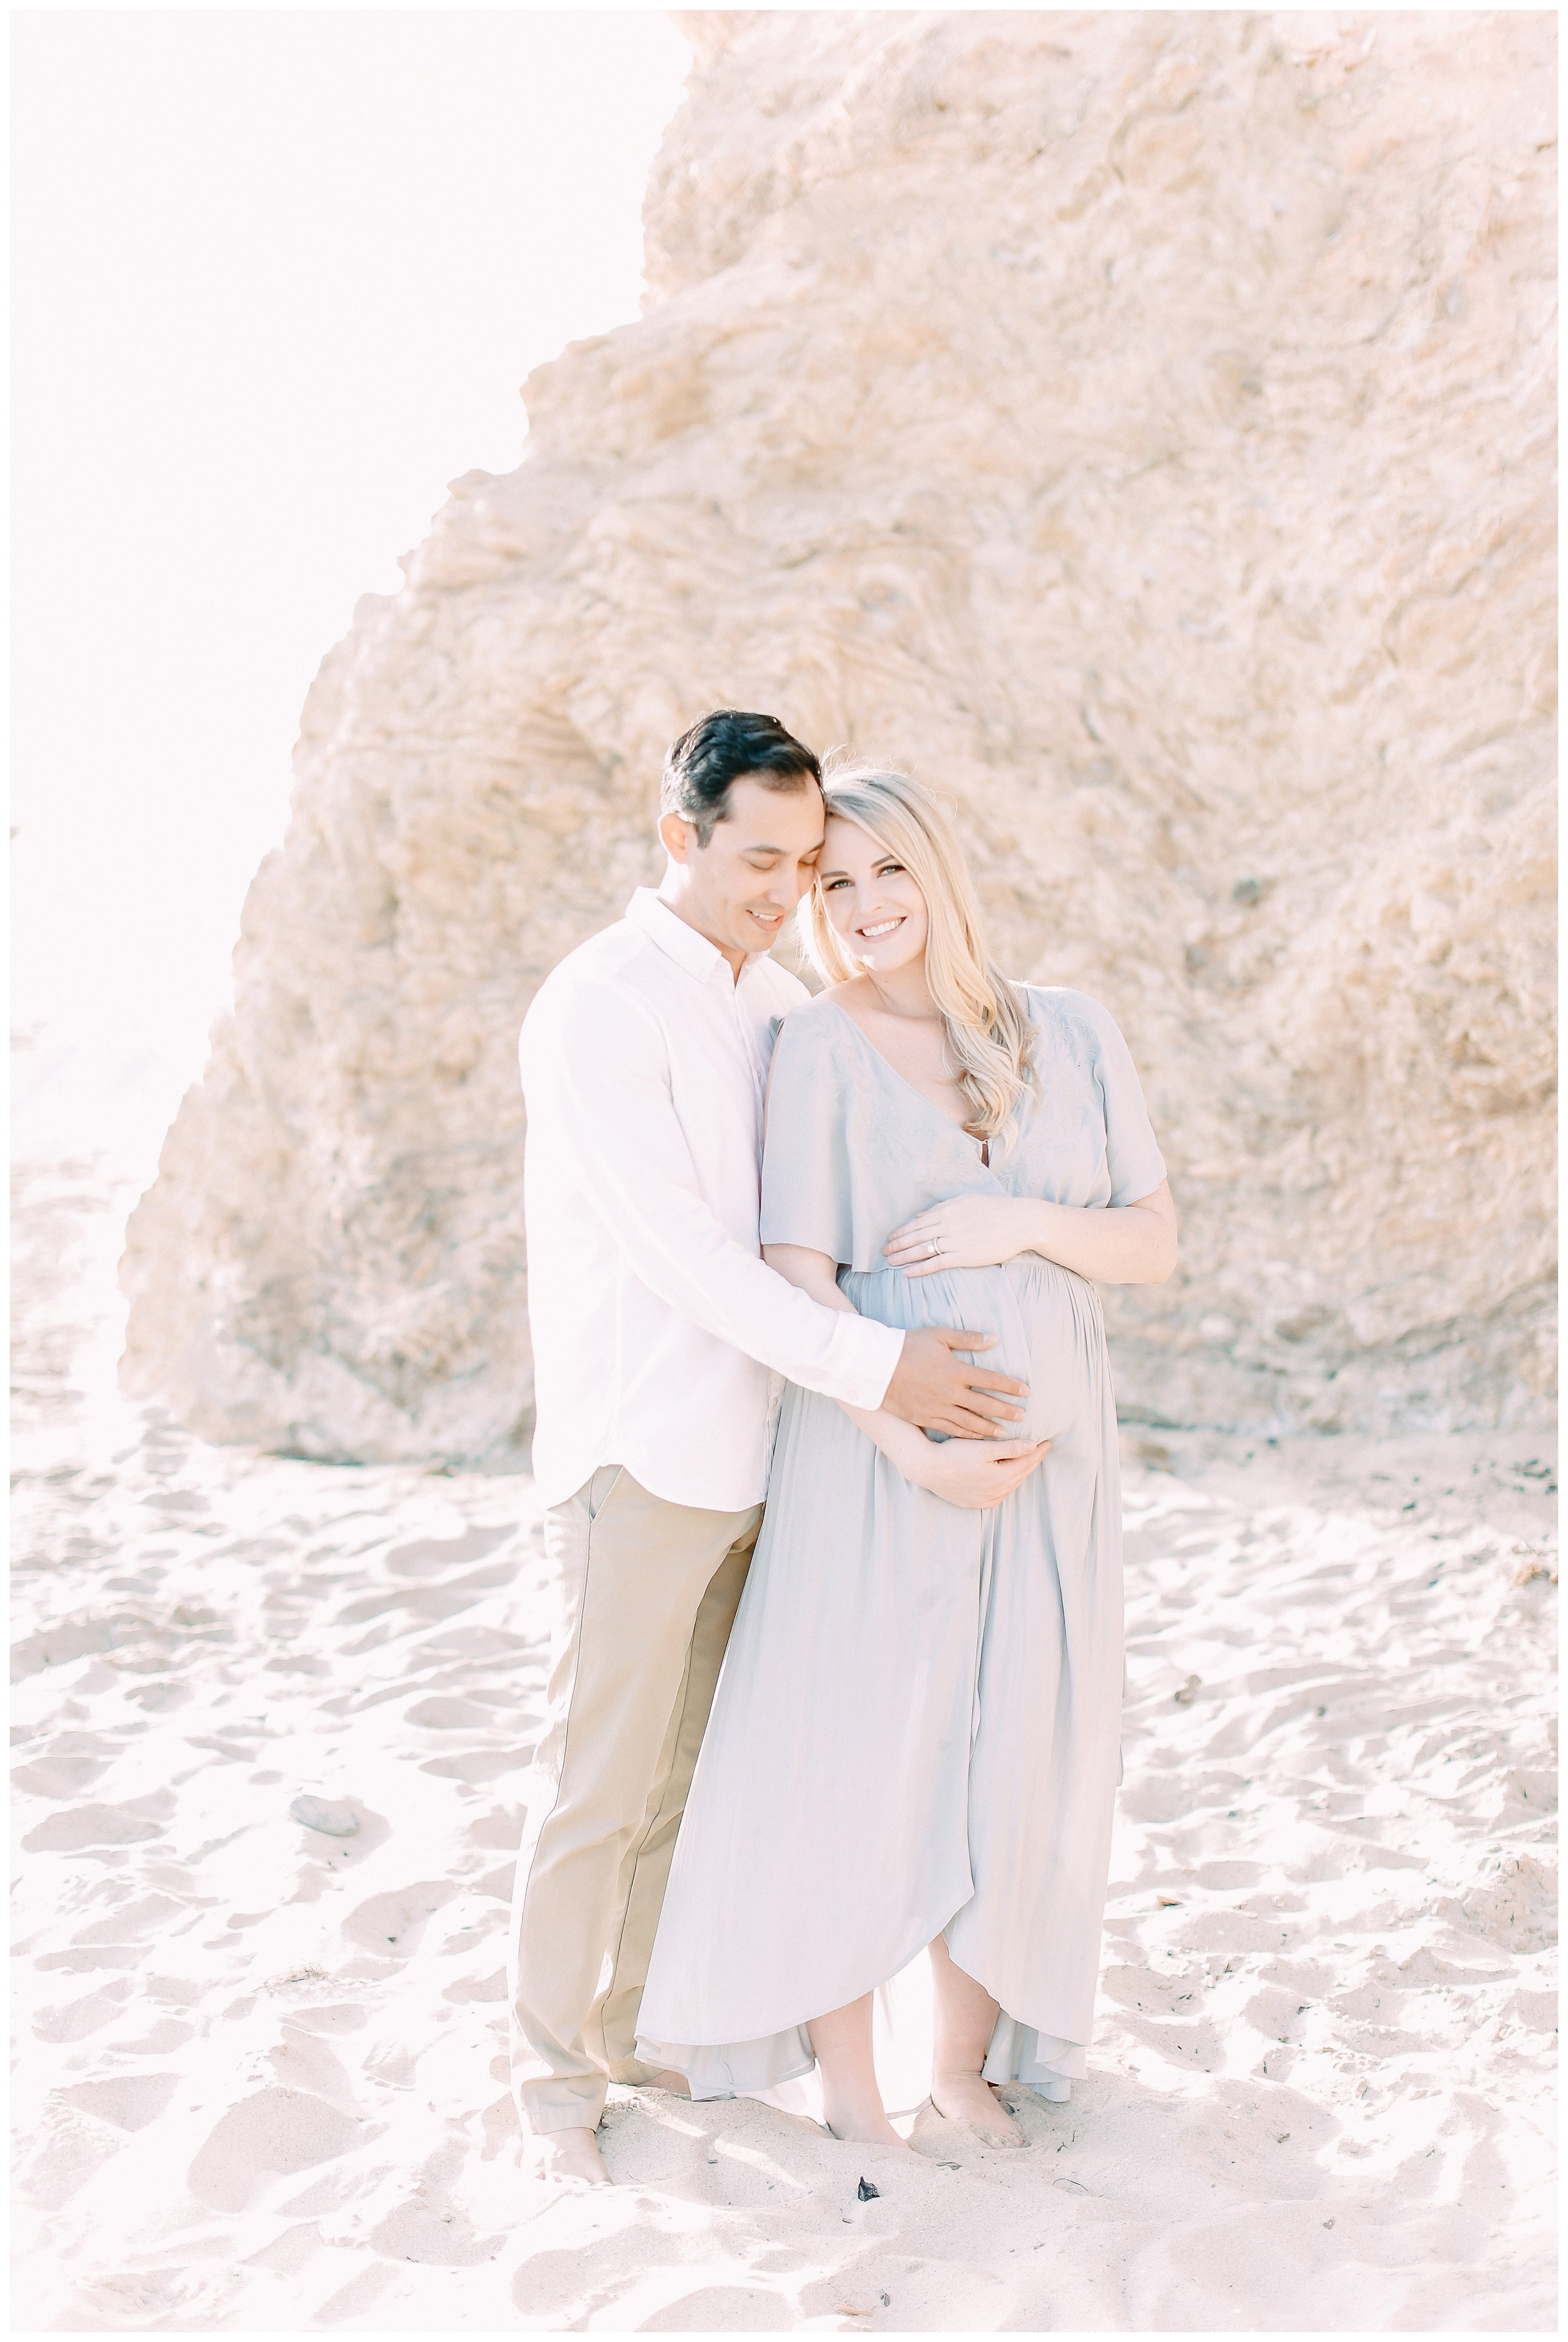 Little_Corona_Beach_Maternity_Session_Orange_county_family_photographer_cori_kleckner_photography_laguna_beach_family_session_0721.jpg